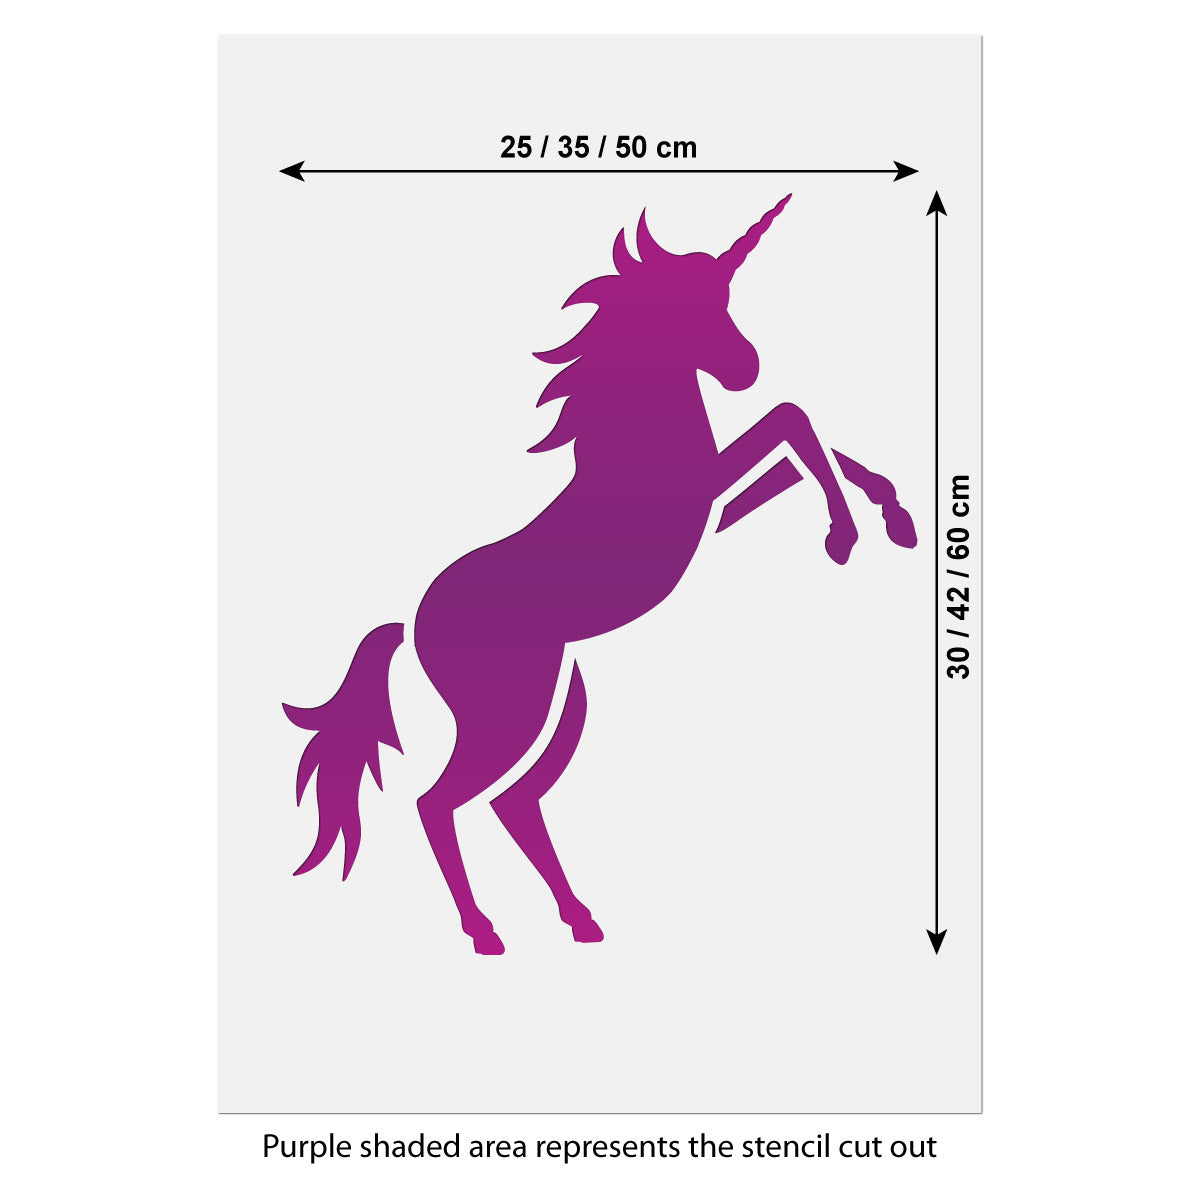 CraftStar Unicorn Stencil Size Guide